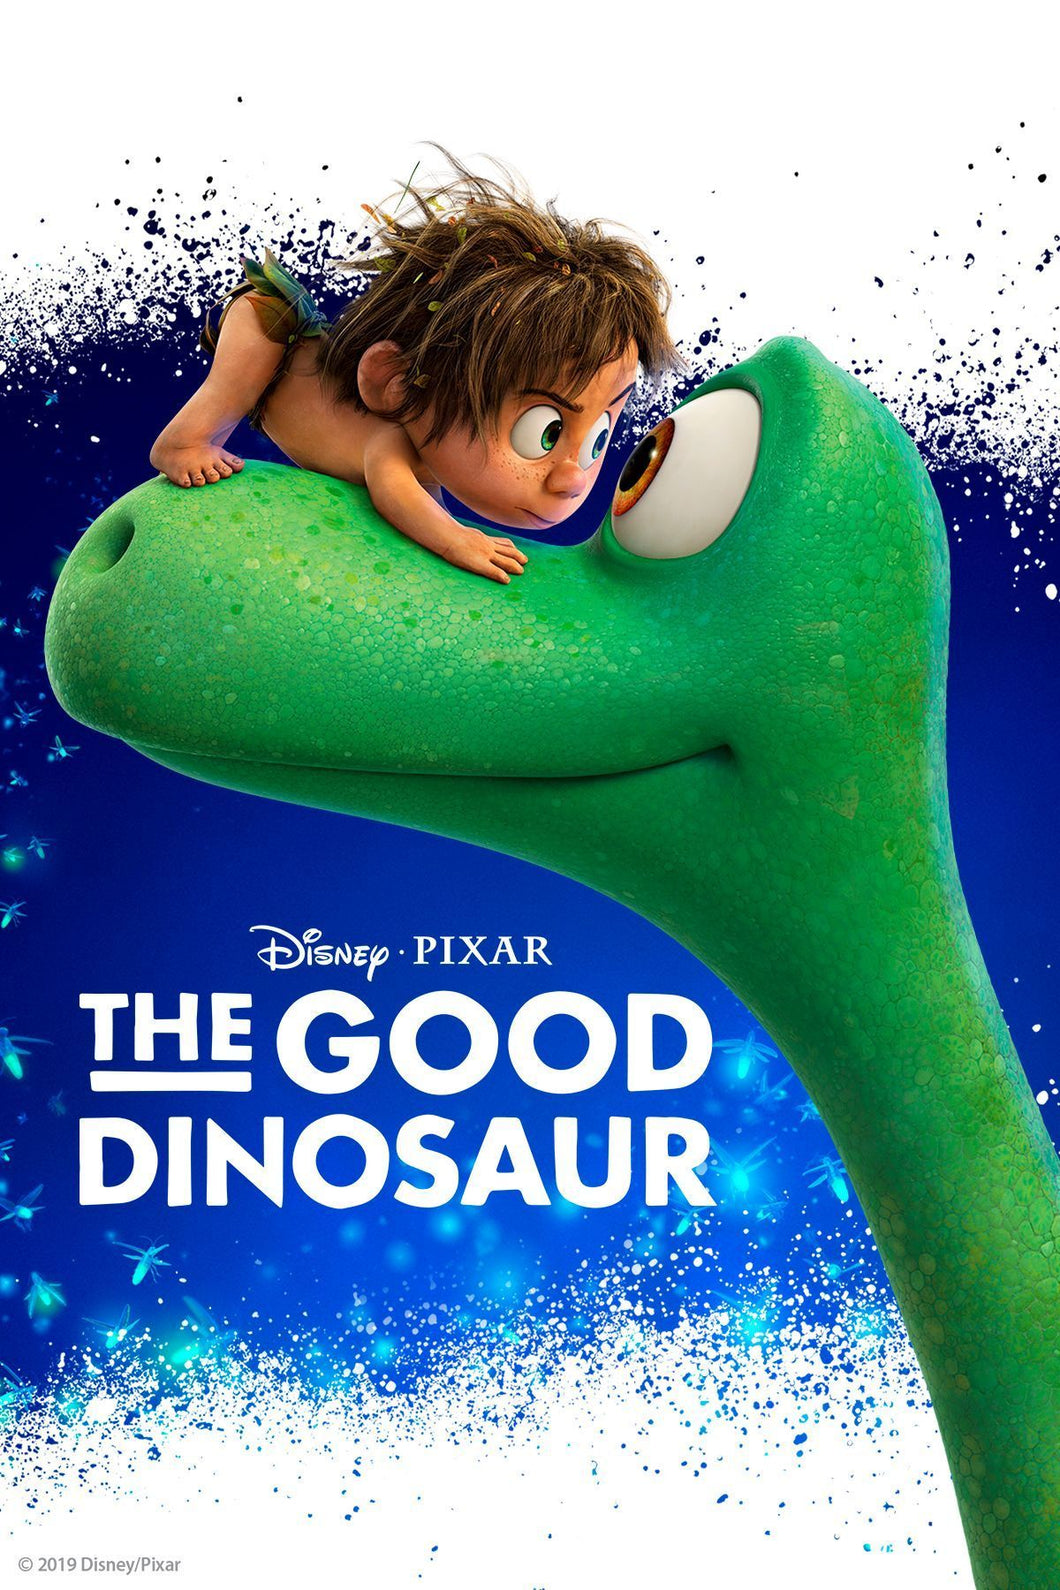 The Good Dinosaur | HD Movies Anywhere Code Ports to Vudu, iTunes, GP - Movie Sometimes